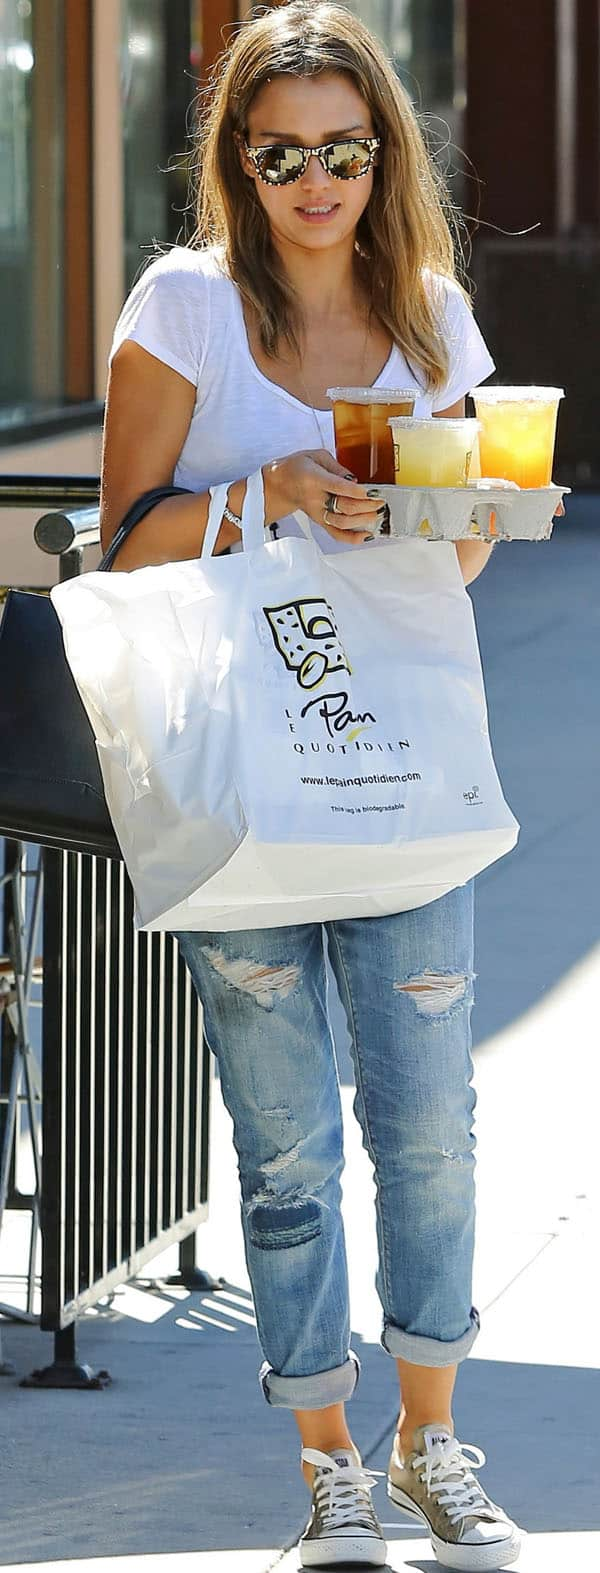 Jessica Alba grabs lunch from Le Pain Quotidien